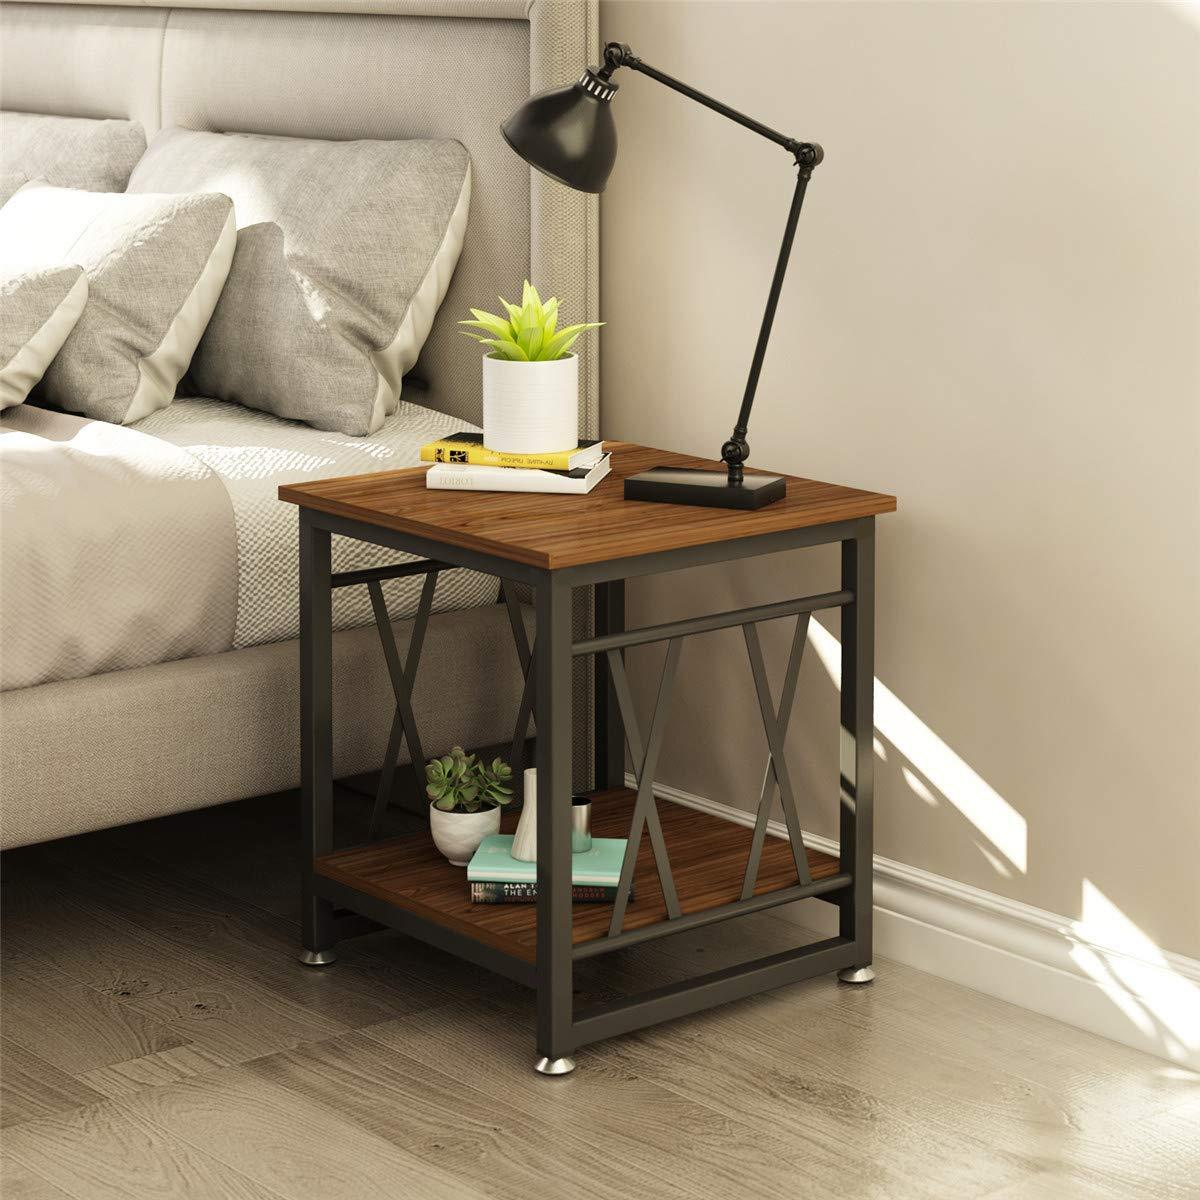 End Table with Storage 2 Tier Cocktail Table for Living Room Bedroom